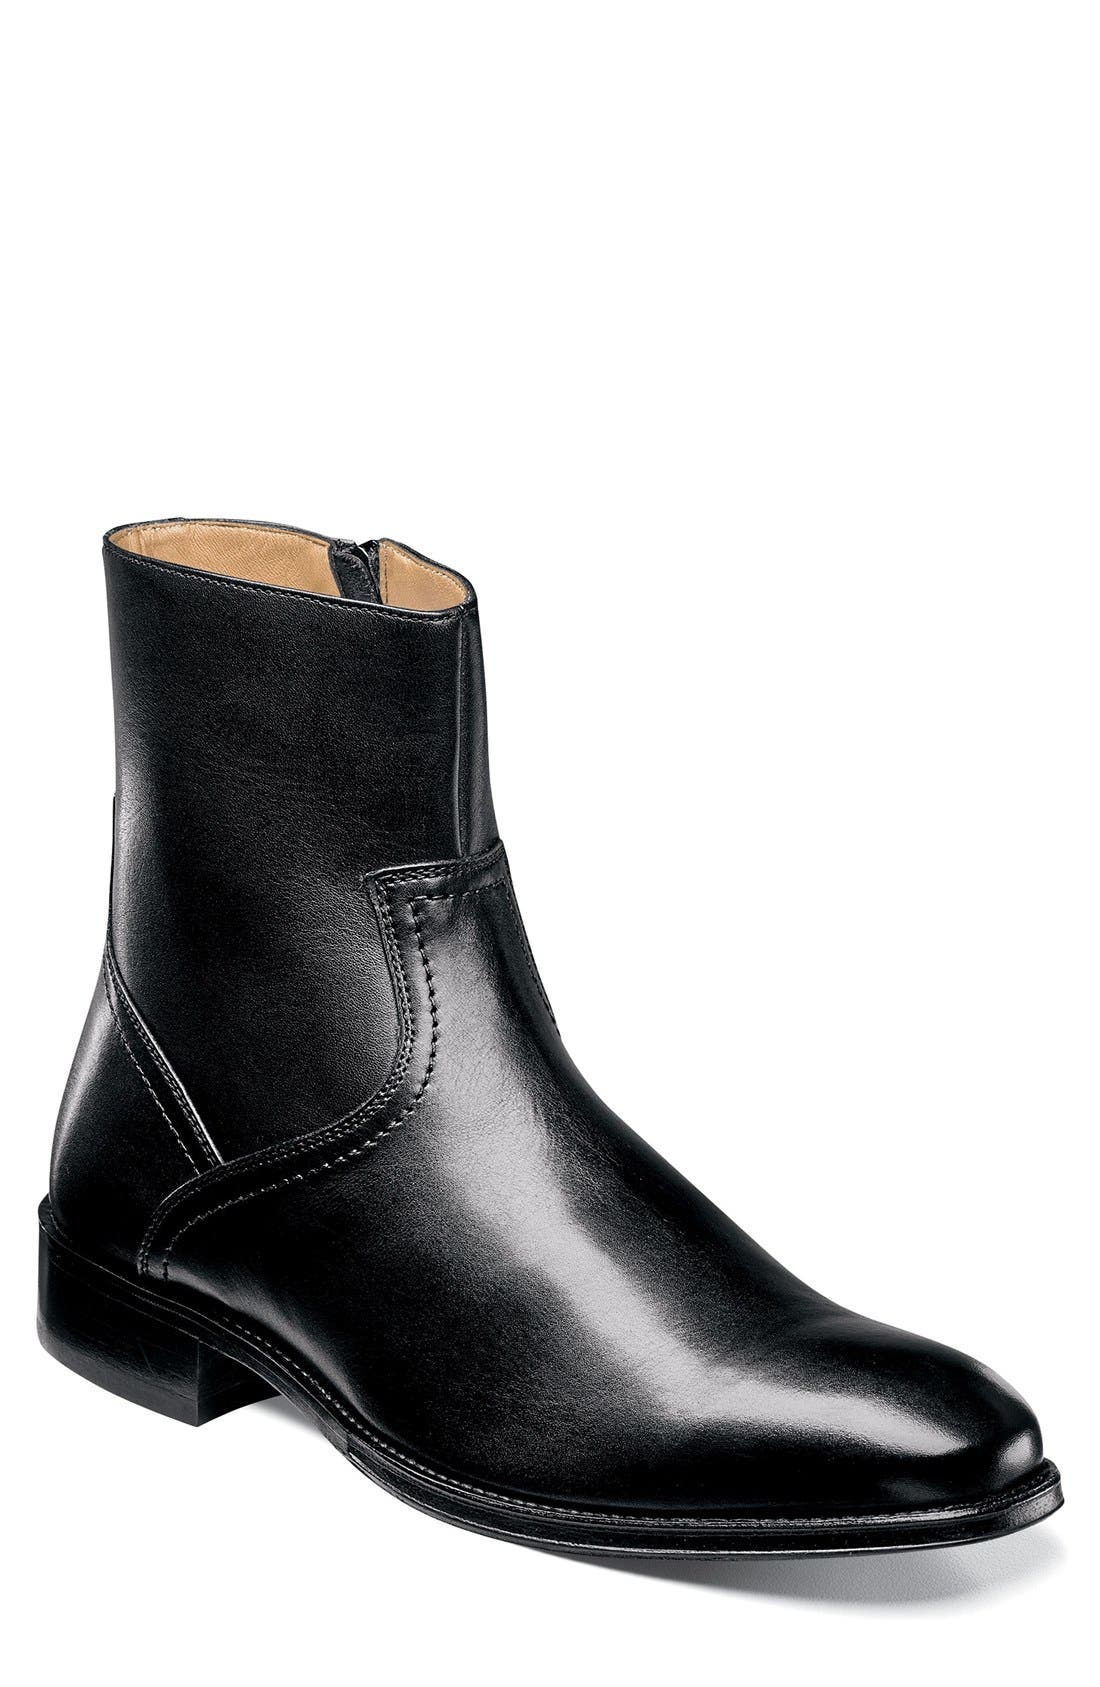 Main Image - Florsheim Capital Zip Boot (Men)